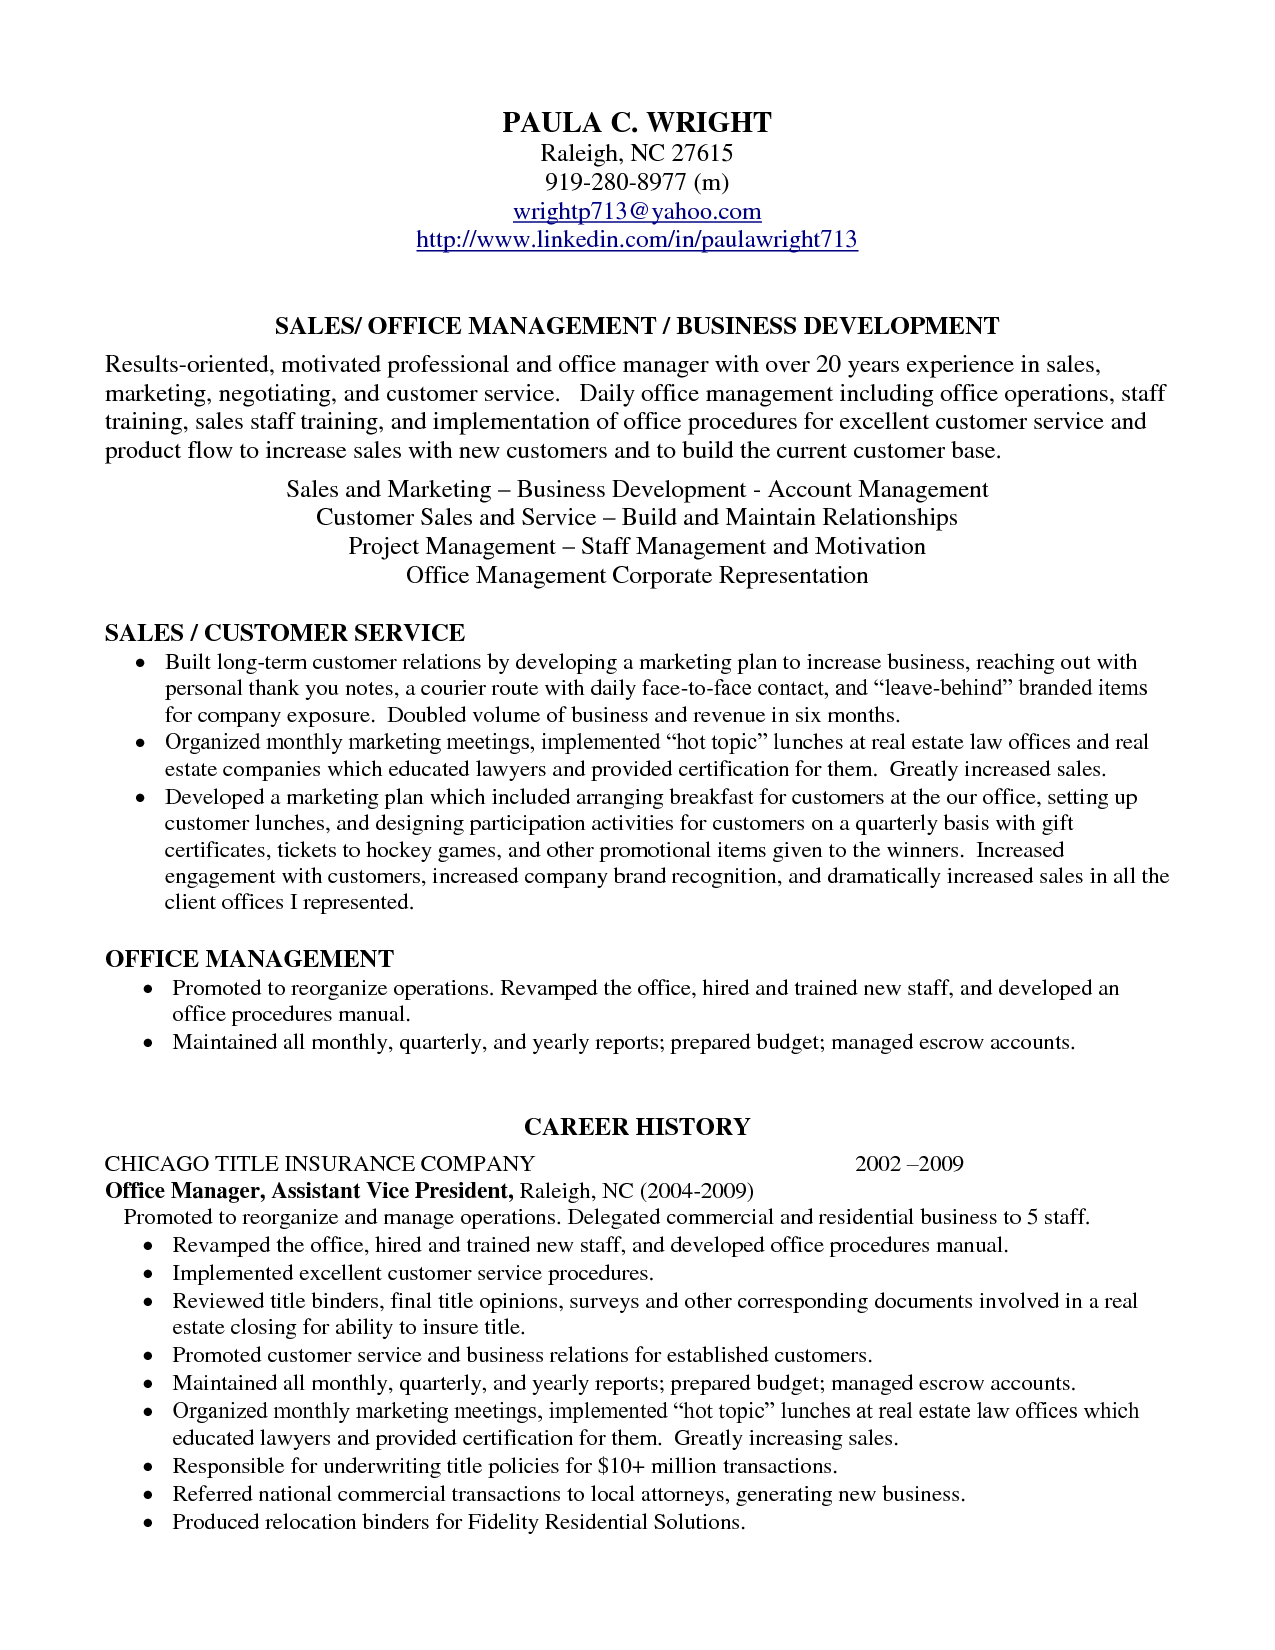 Charming Professional Marketing Resume Sample Manager  Examples Of Resume Profiles